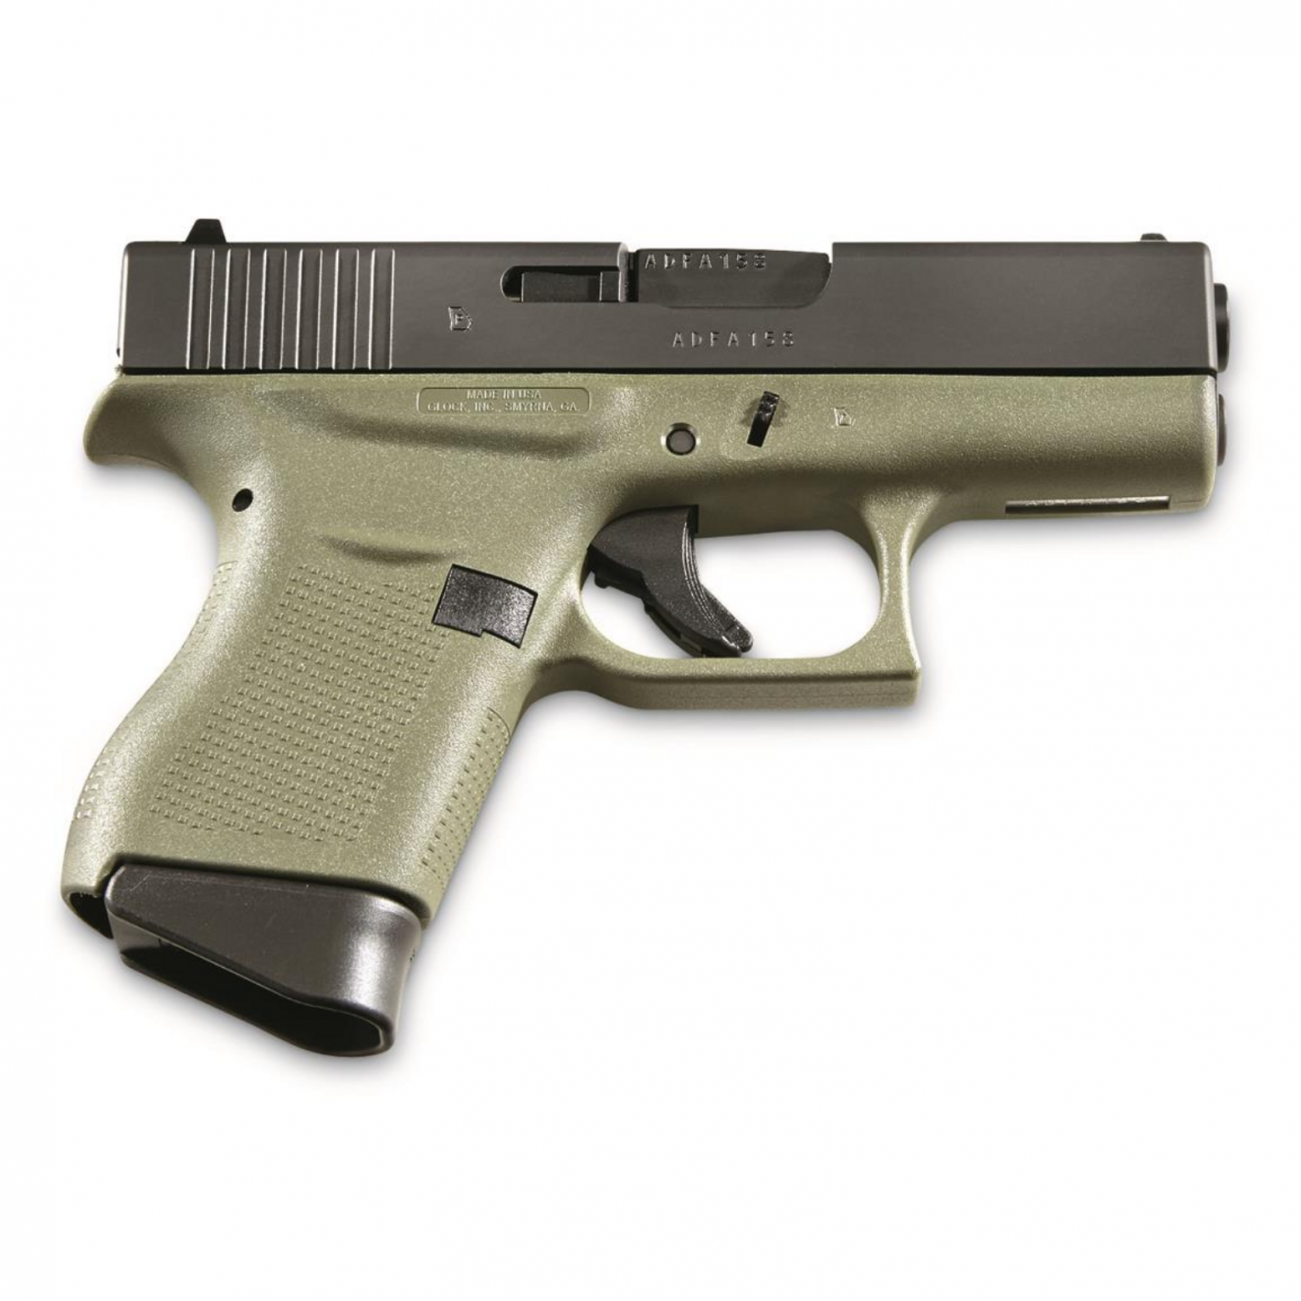 Was the Glock 43 Overhyped?